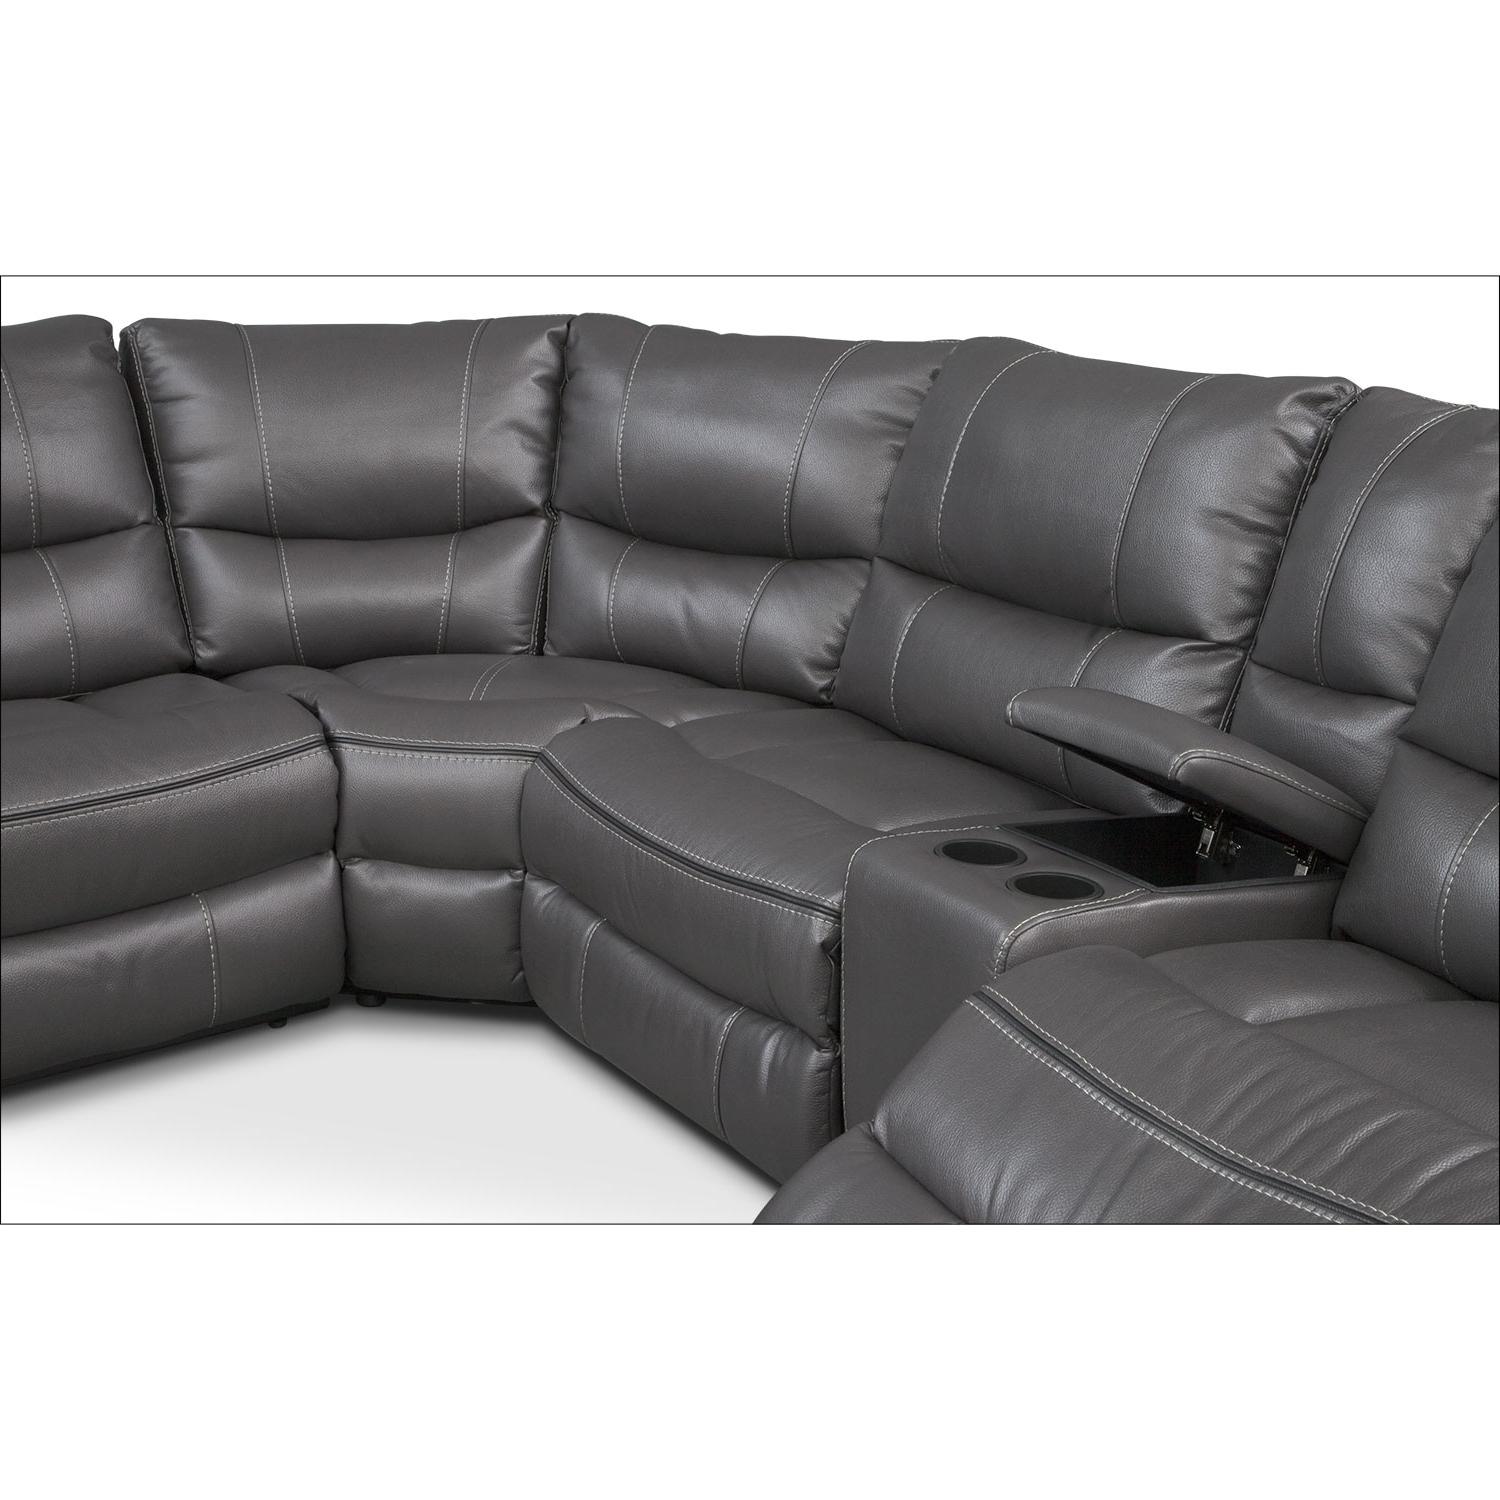 Orlando Sectional Sofas Throughout Most Recently Released Orlando 6 Piece Power Reclining Sectional With 1 Stationary Chair (View 5 of 20)